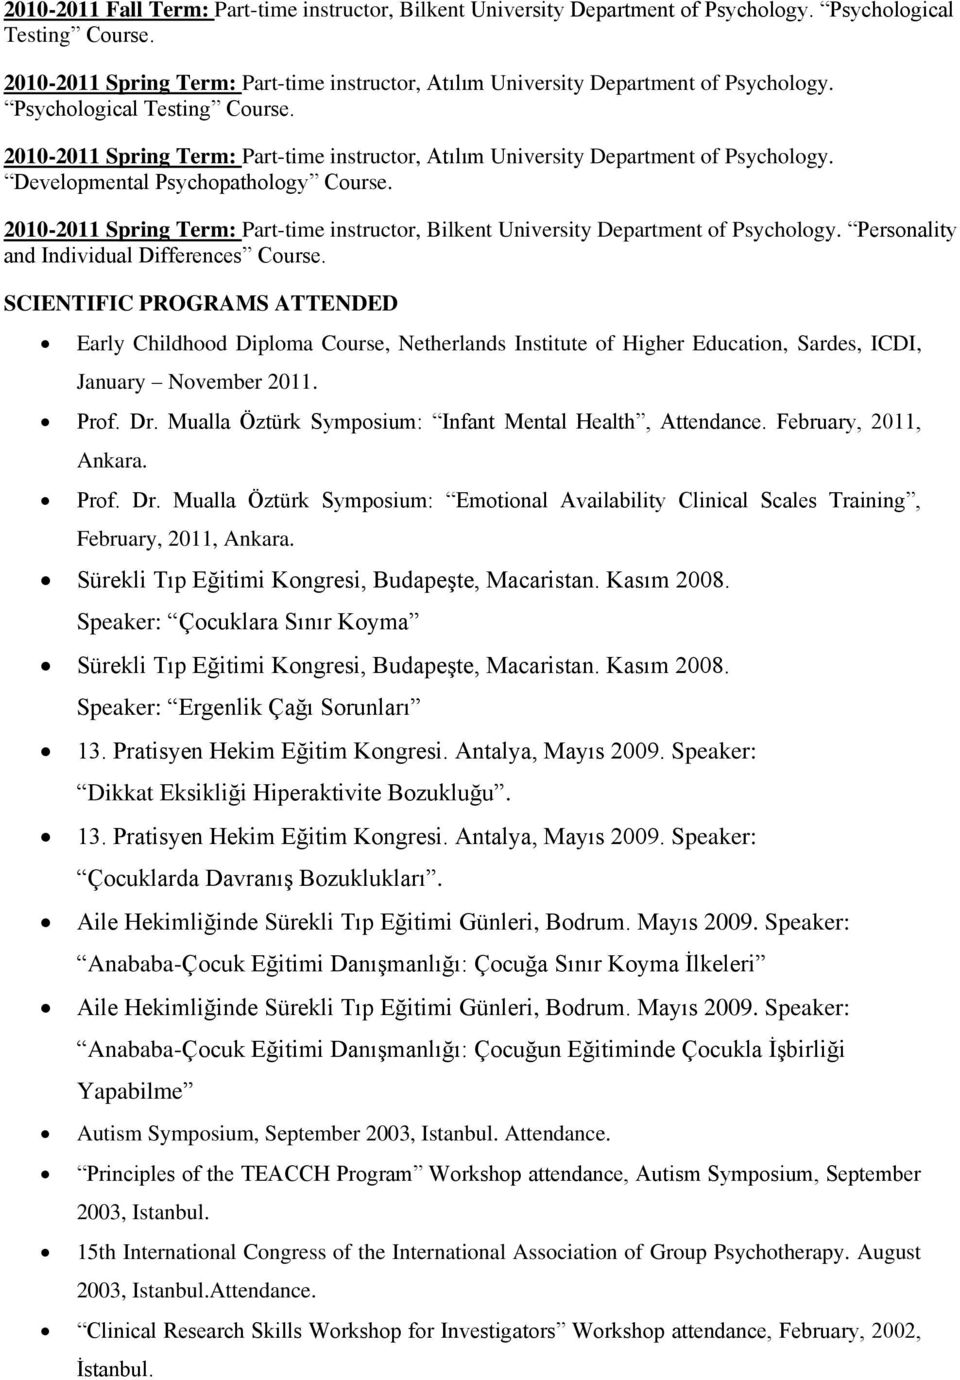 2010-2011 Spring Term: Part-time instructor, Atılım University Department of Psychology. Developmental Psychopathology Course.